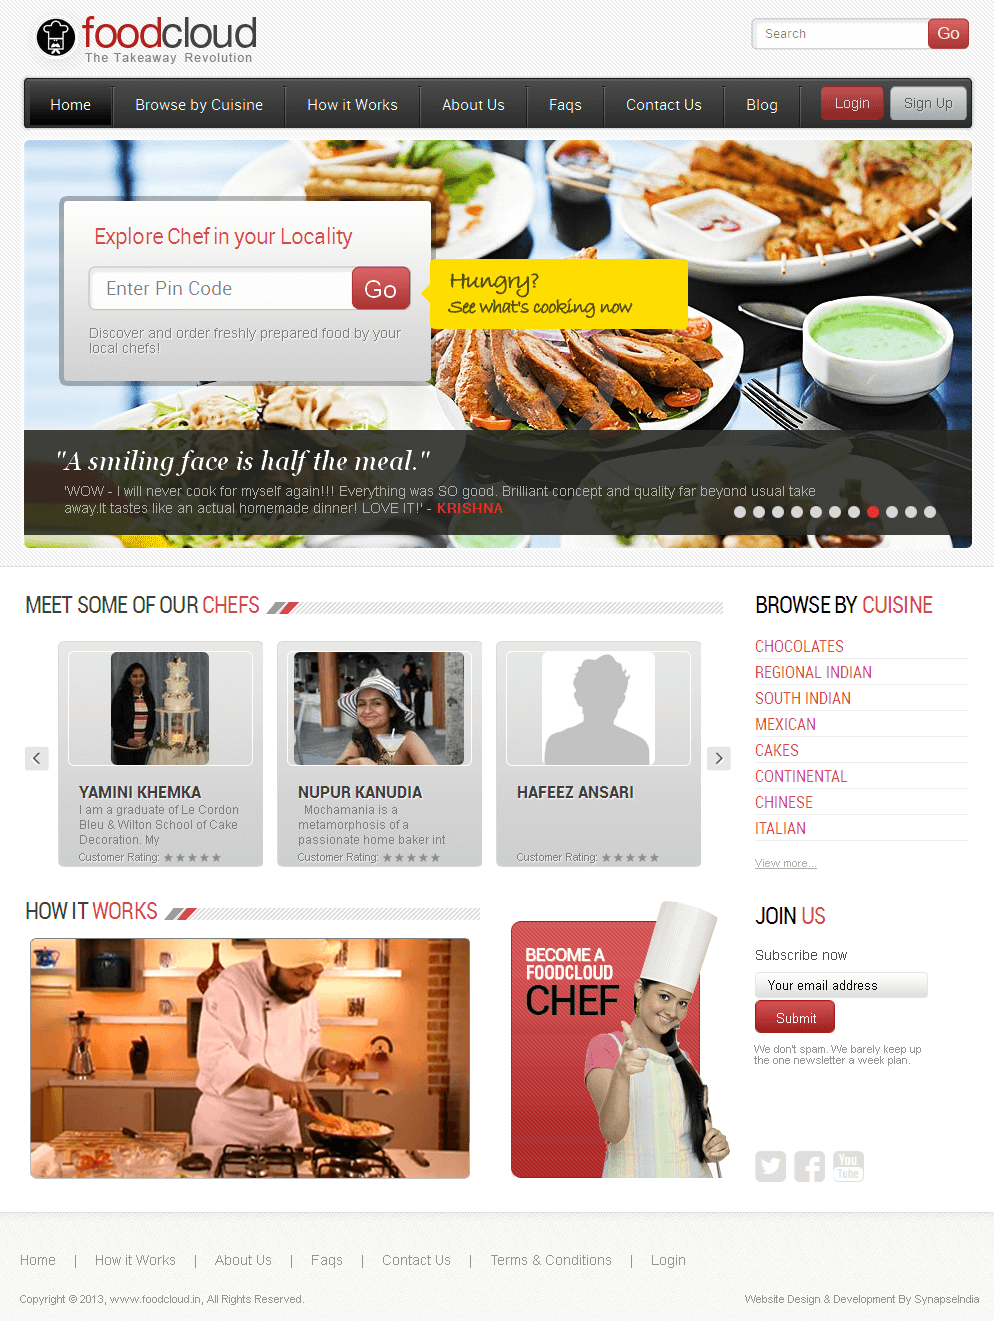 Website for 'foodcloud' – Online Marketplace for Home Chefs and Caterers